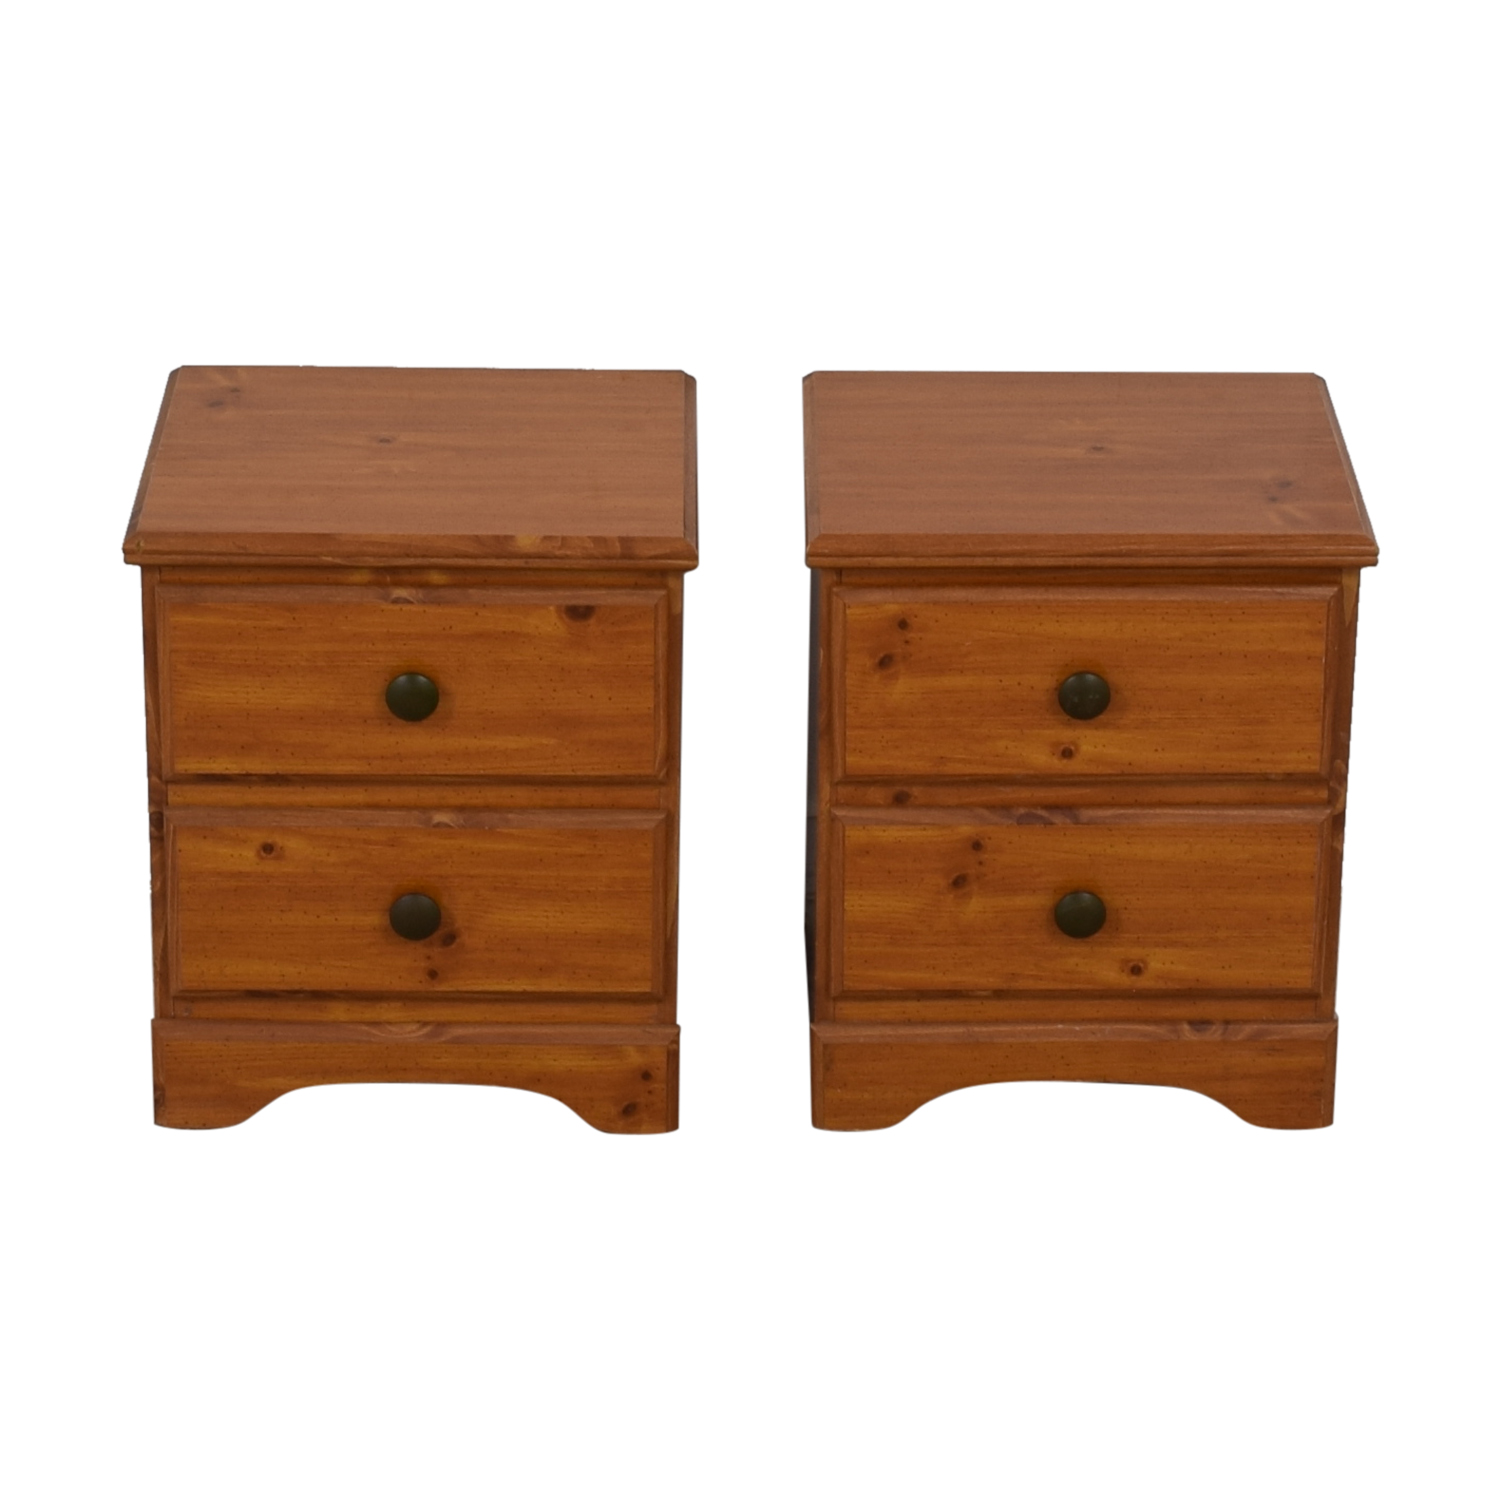 off chestnut two drawer night stands tables used accent table dimensions small outdoor and chairs mosaic tile bistro patio set covers curio display cabinet cherry wood dining room